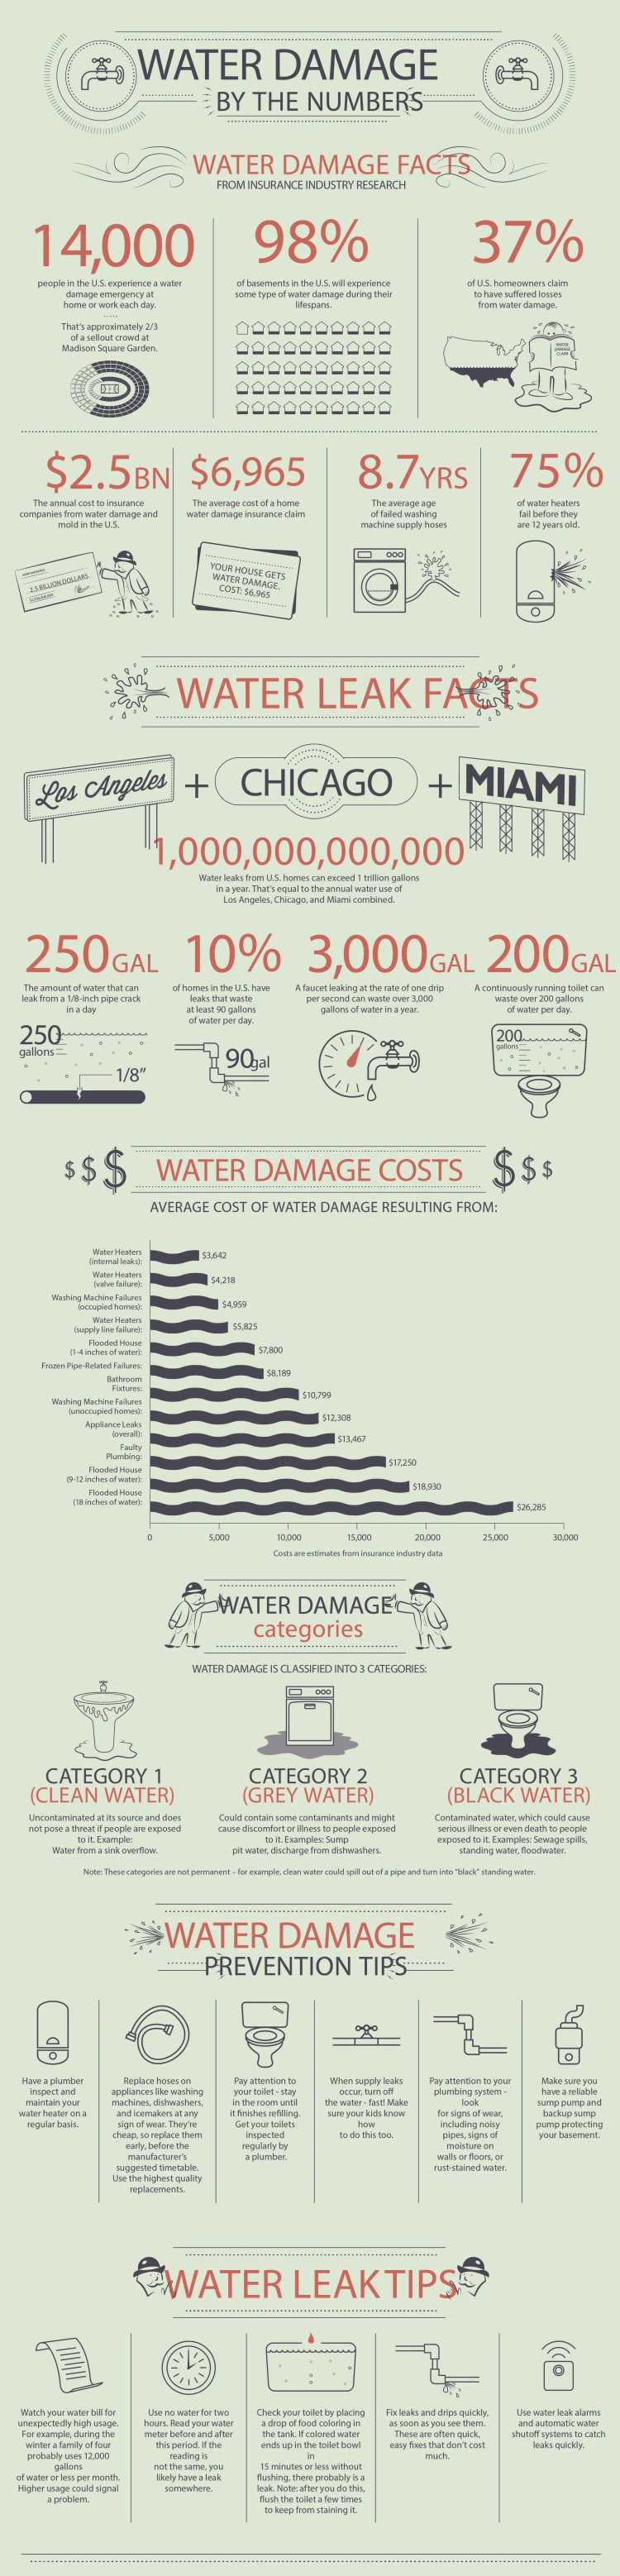 Water Damage Tips & Facts